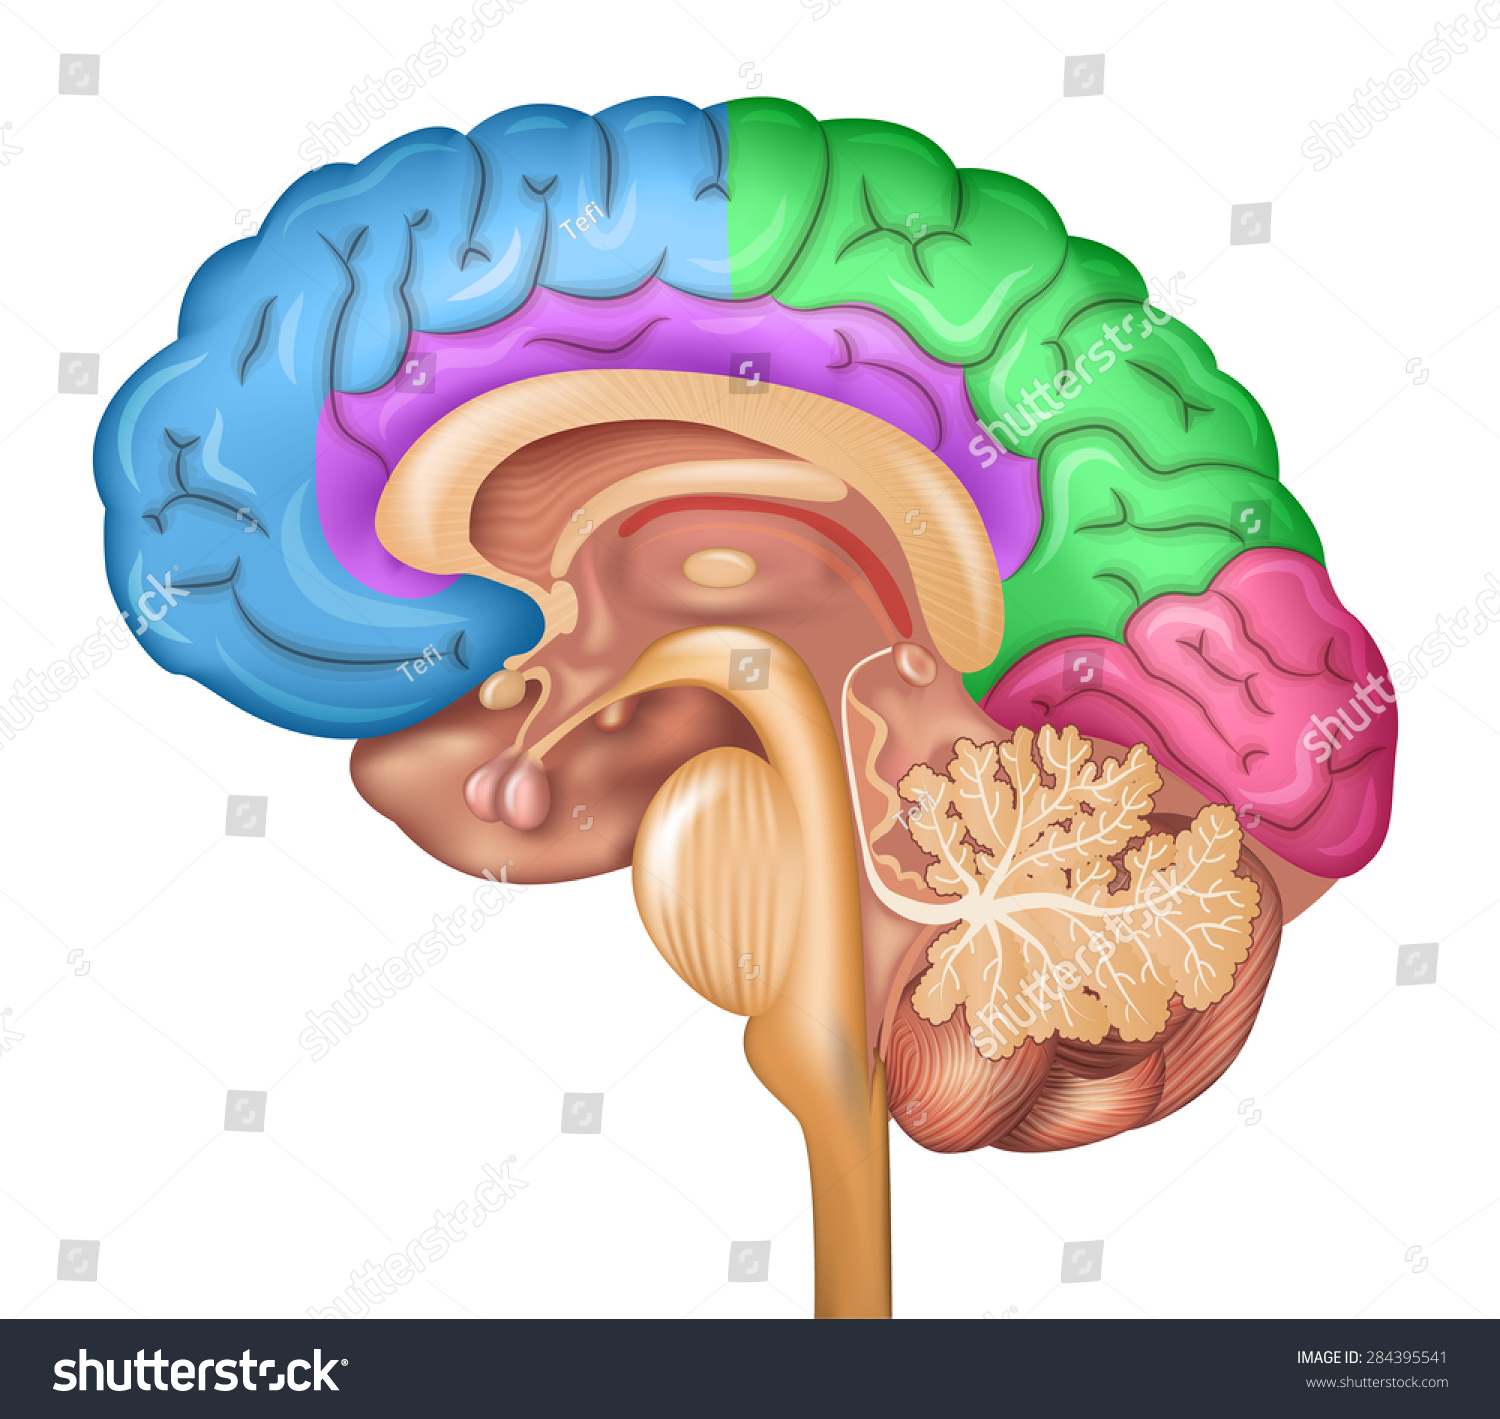 Human Brain Lobes Beautiful Colorful Illustration Stock Illustration